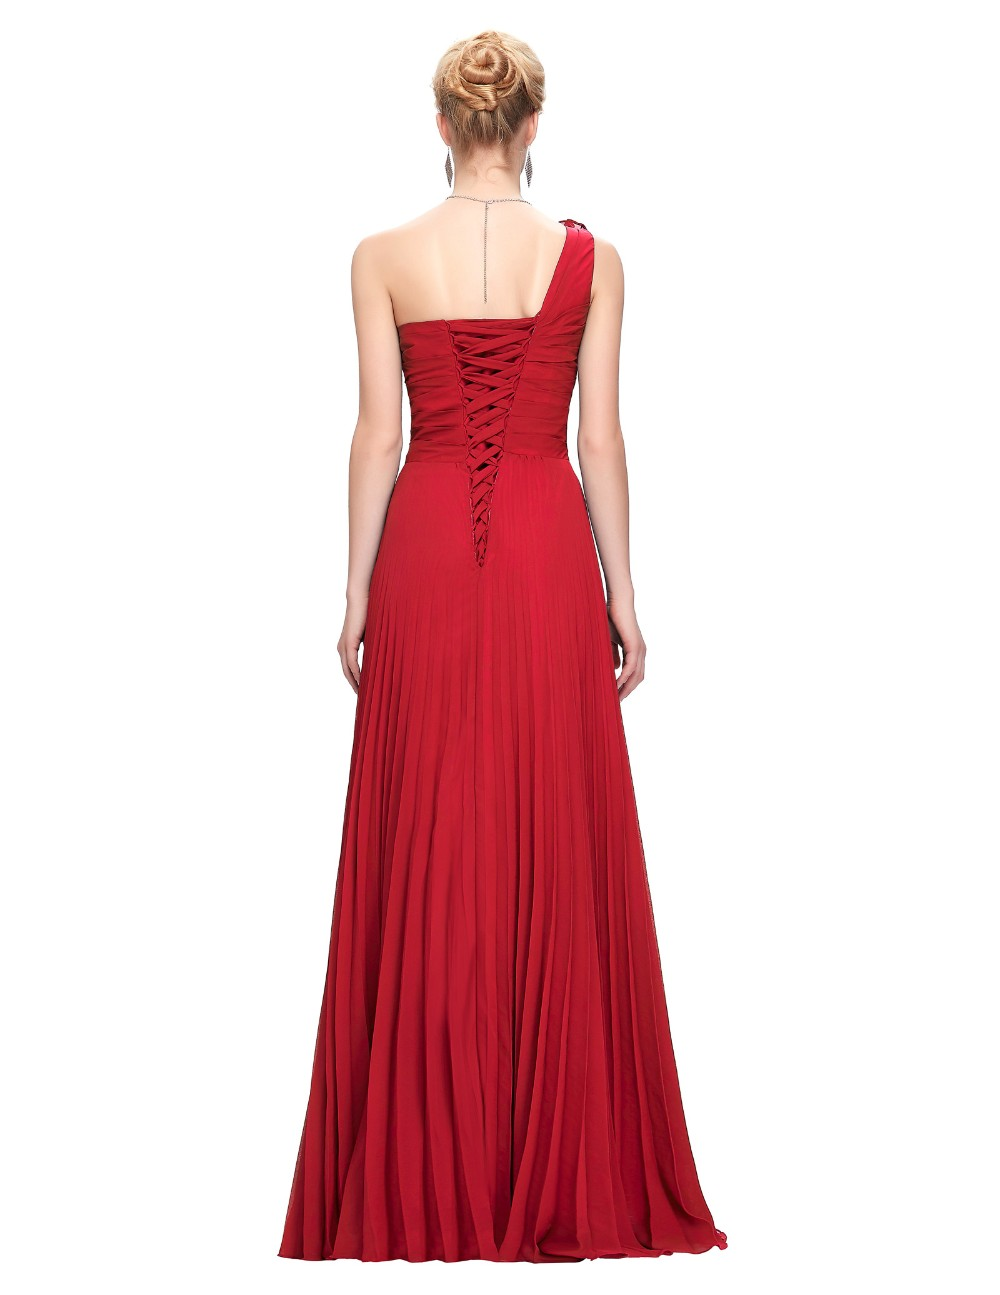 Grace Karin Chiffon Long Evening Dress One Shoulder Pleated Red Green Purple Royal Blue Formal Evening Dress Party Gowns 2018 13